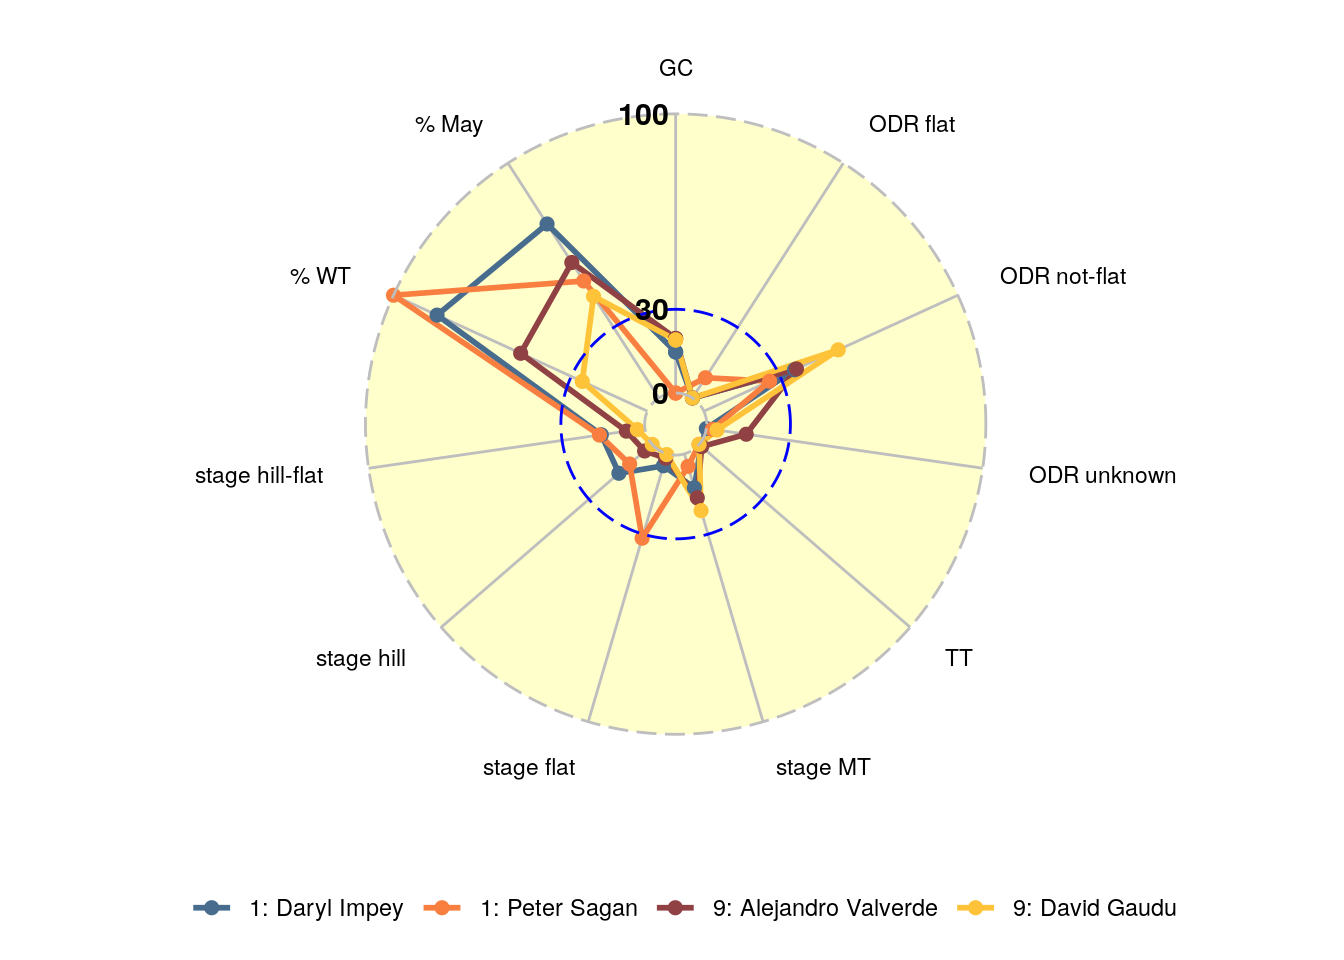 Scores per dimension for D. Impey and P. Sagan (cluster 1) / A. Valverde and D. Gaudu (cluster 9)